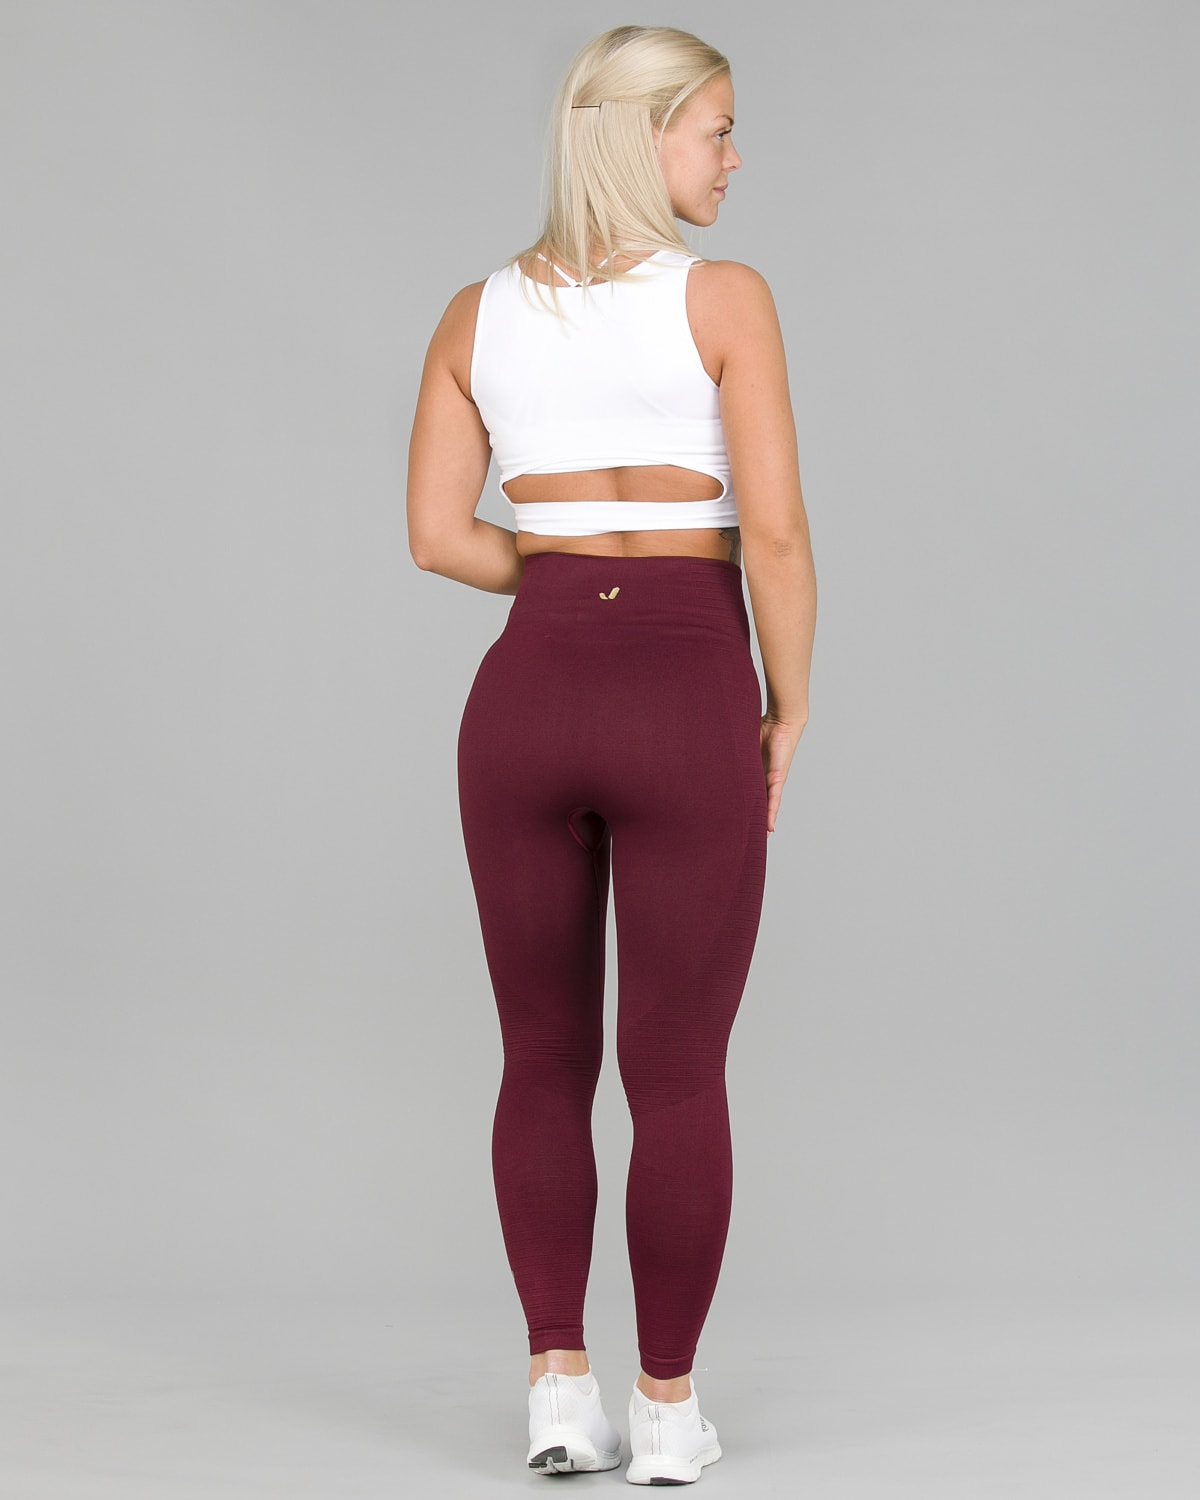 Jerf Gela 2.0 tights Maroon8